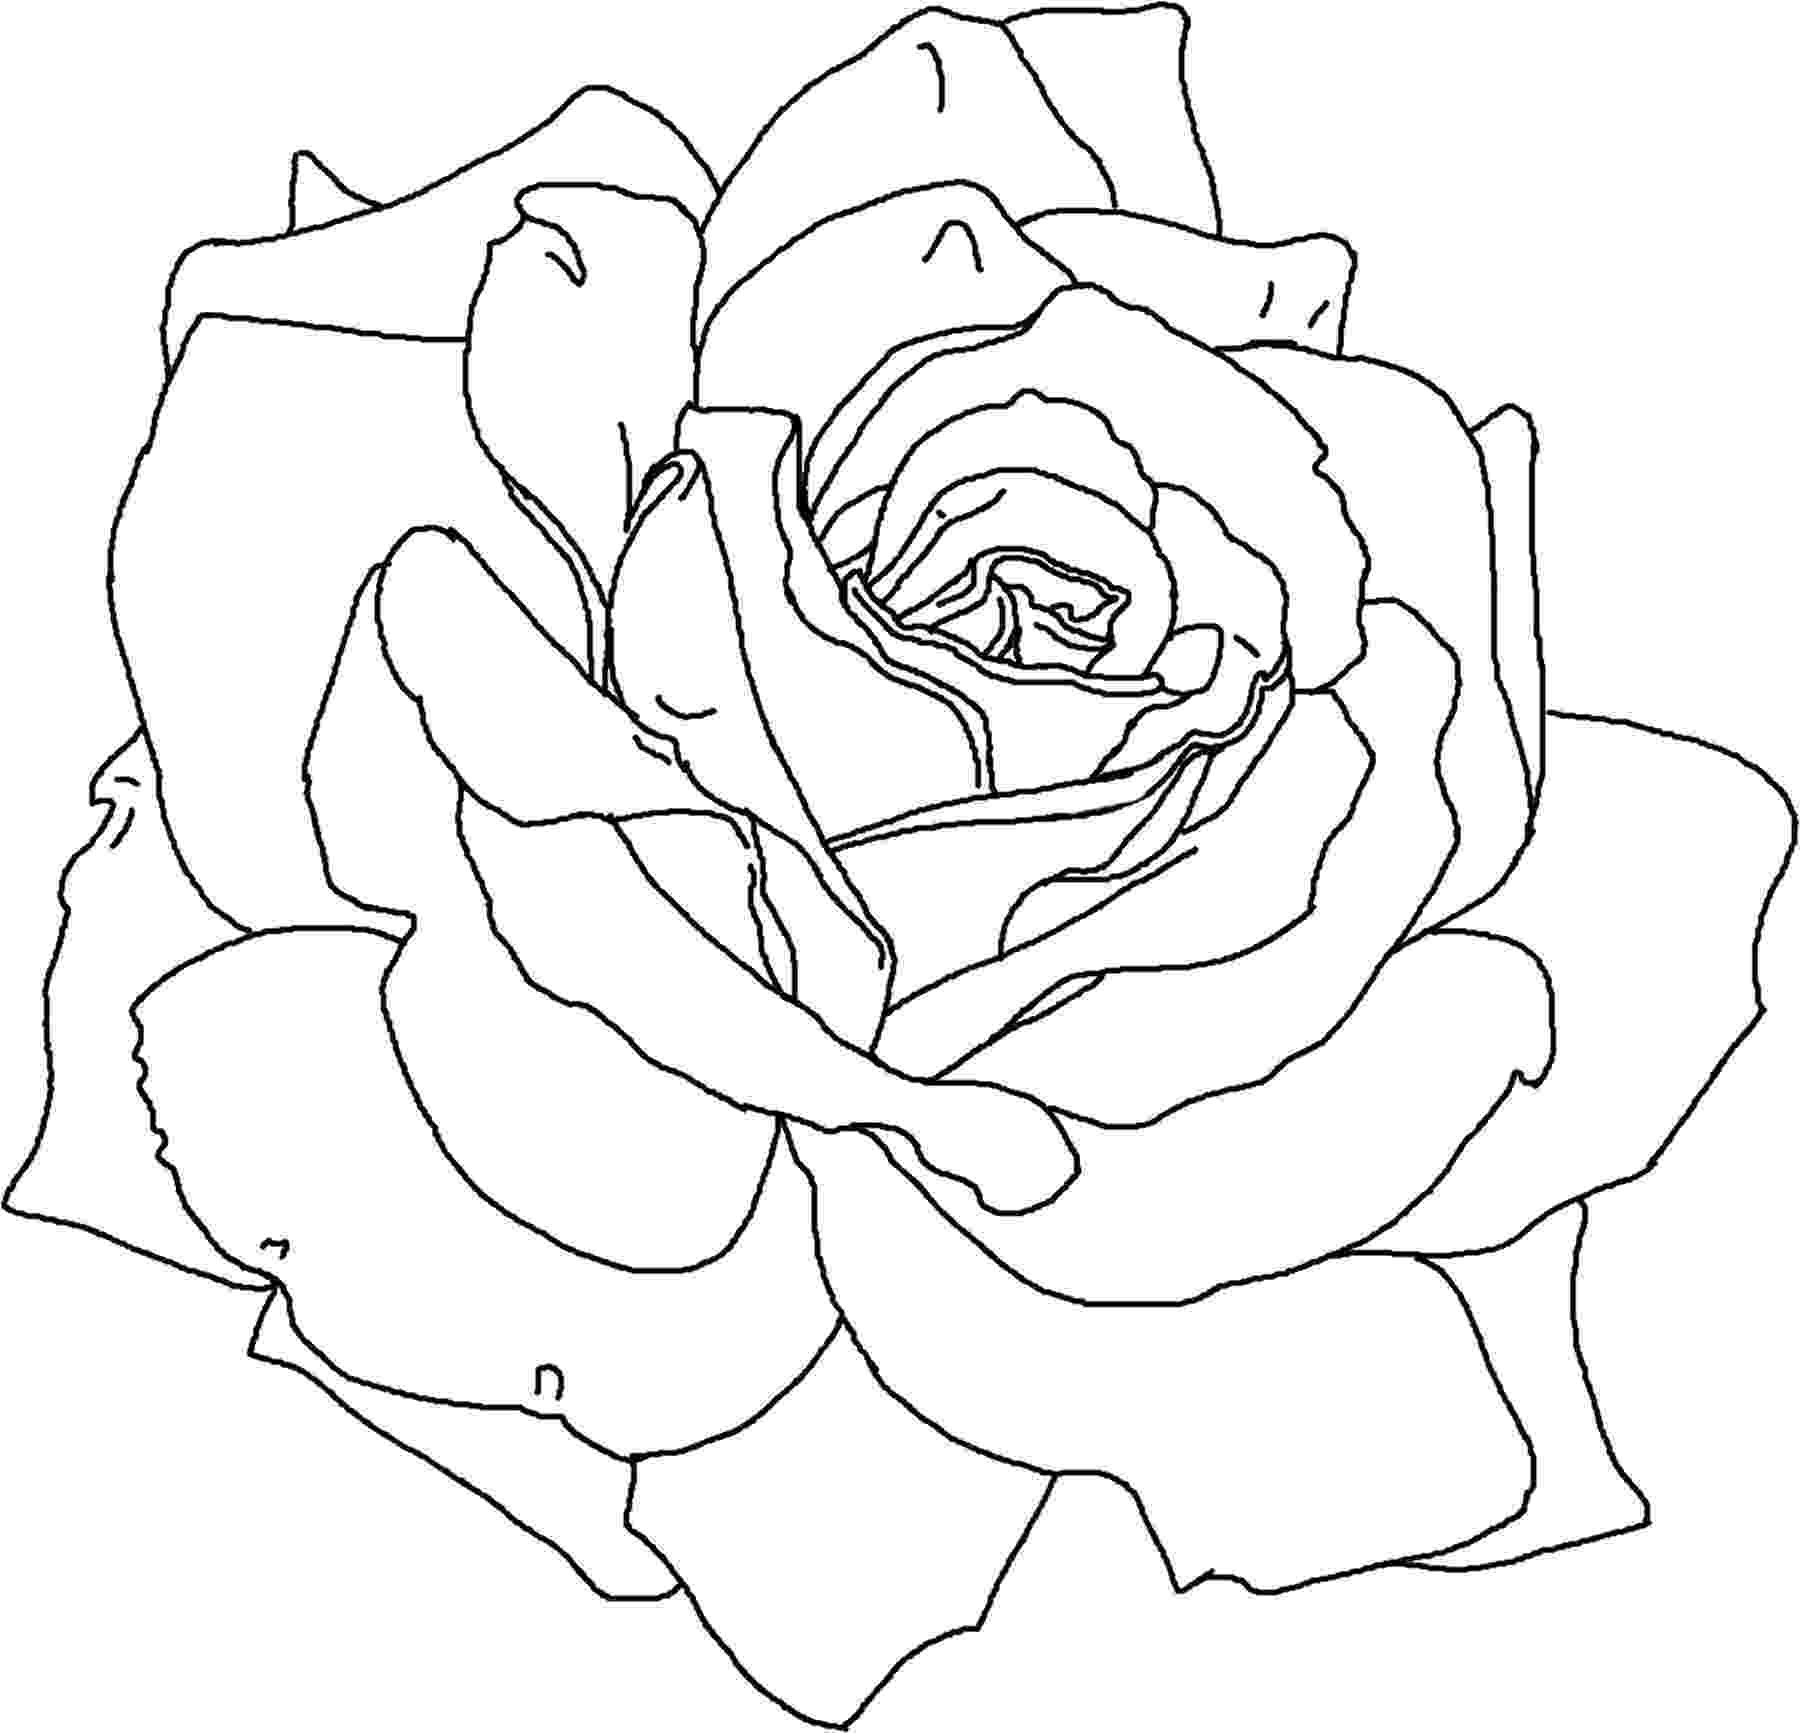 free printable flower coloring pages for adults free printable flower coloring pages for kids best pages free coloring printable for adults flower